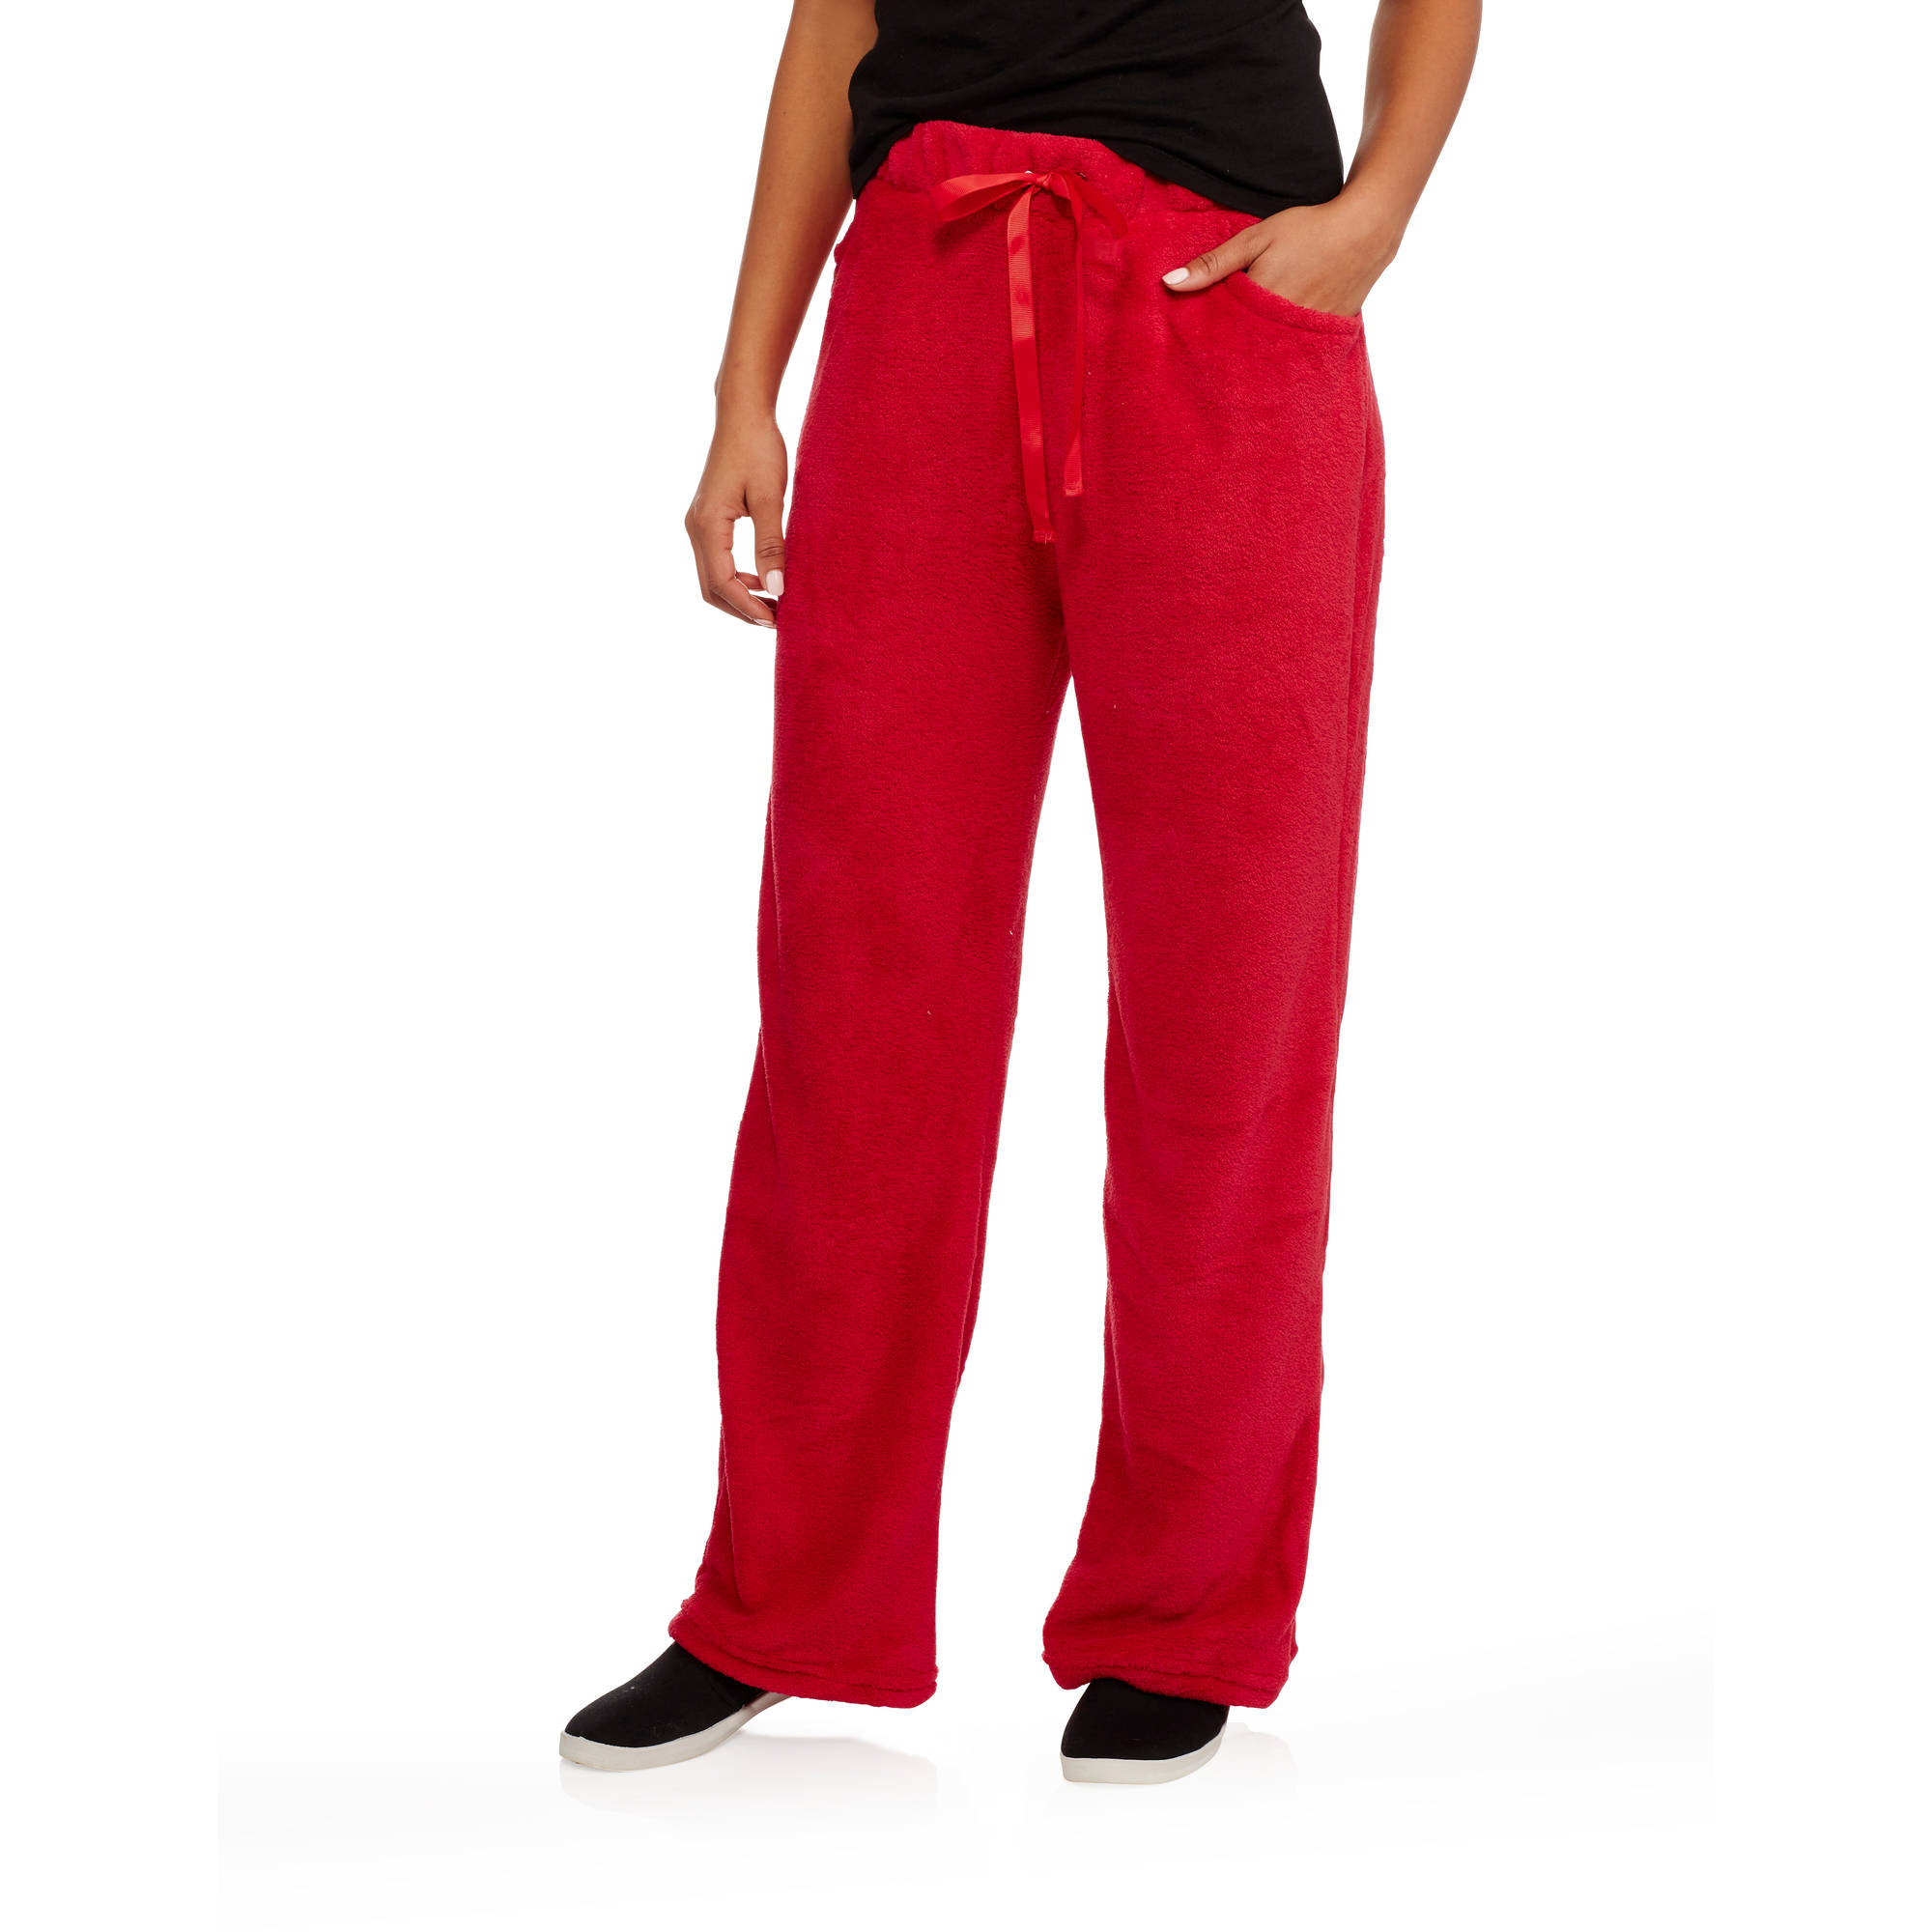 Eye Candy Juniors' Basic Fleece Lounge Pants with Drawstring